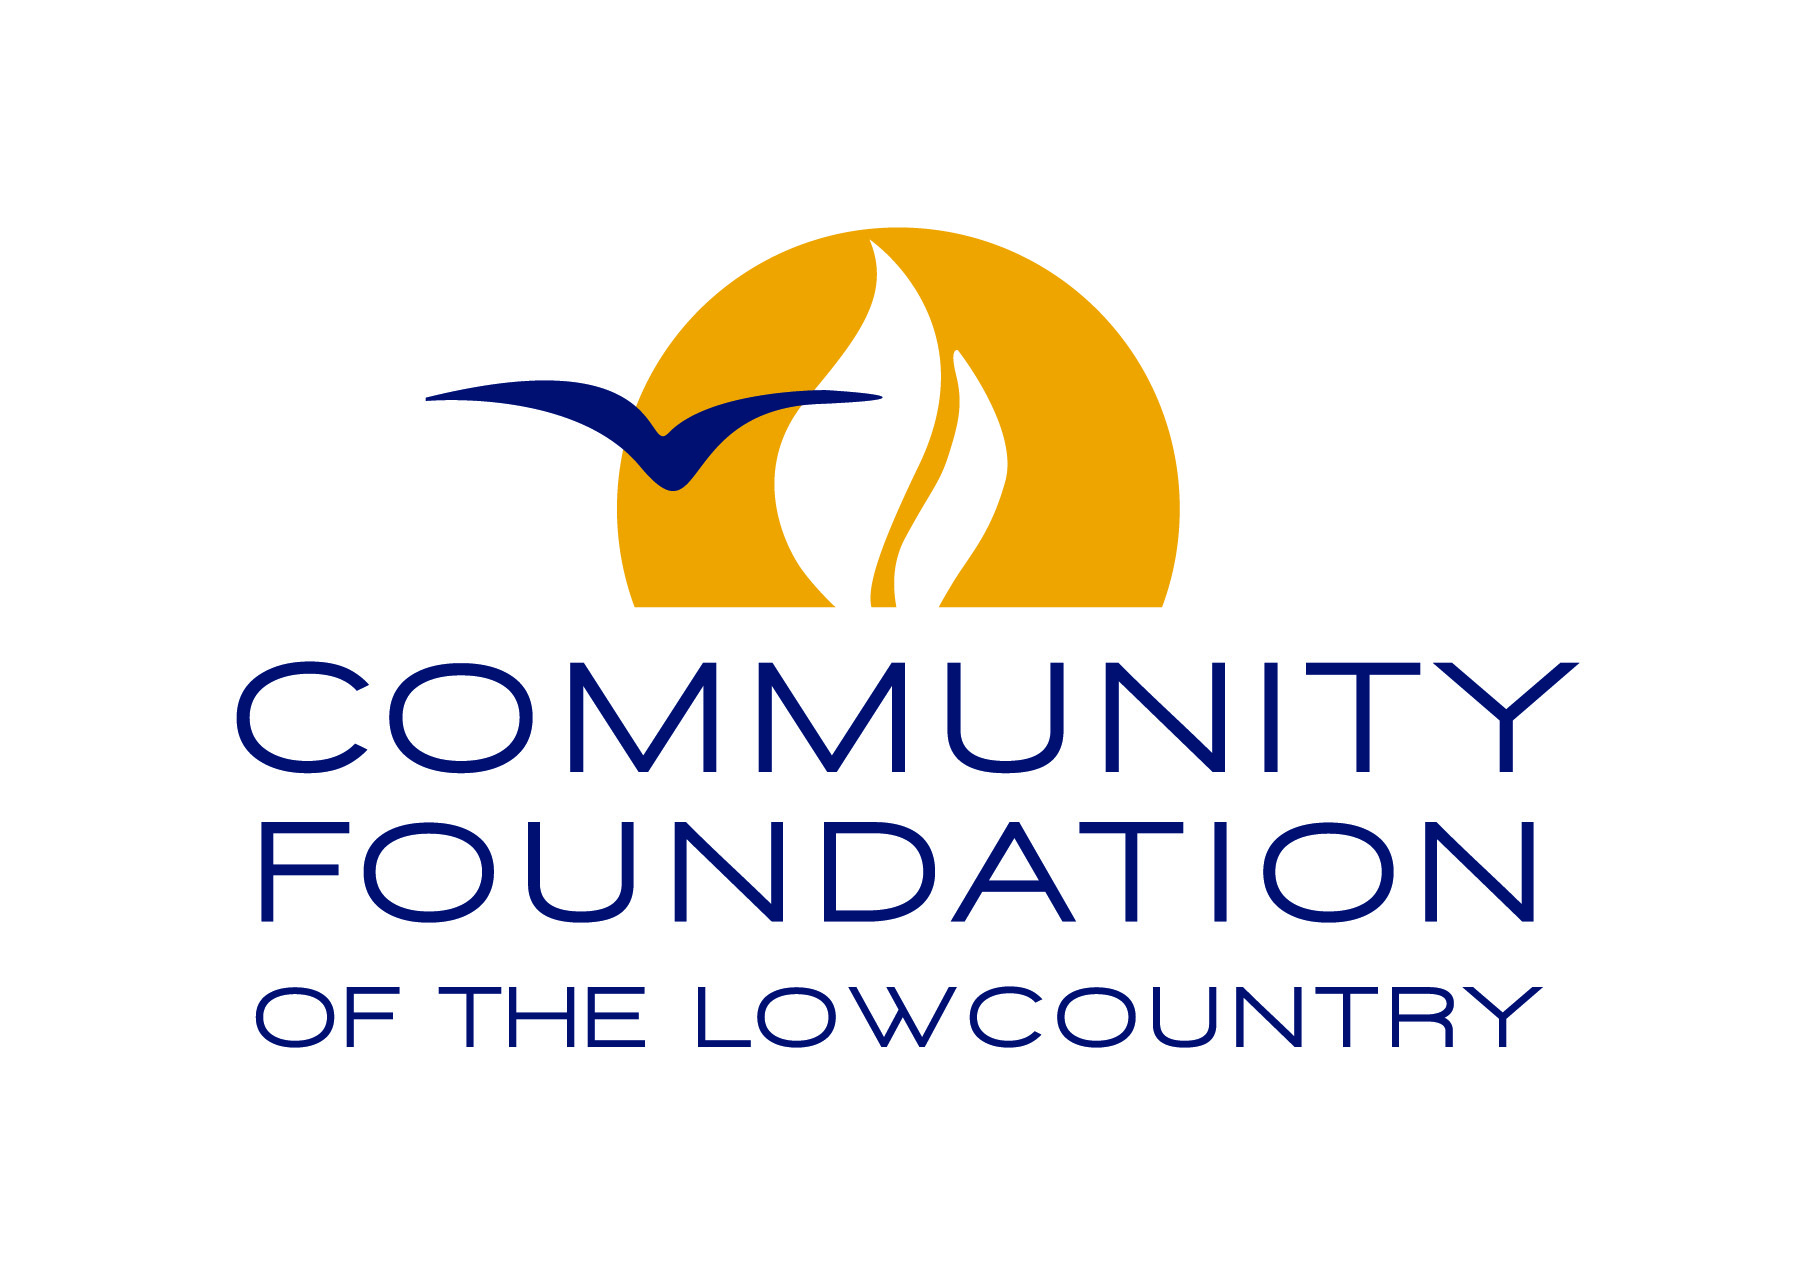 Community Foundation of Lowcountry